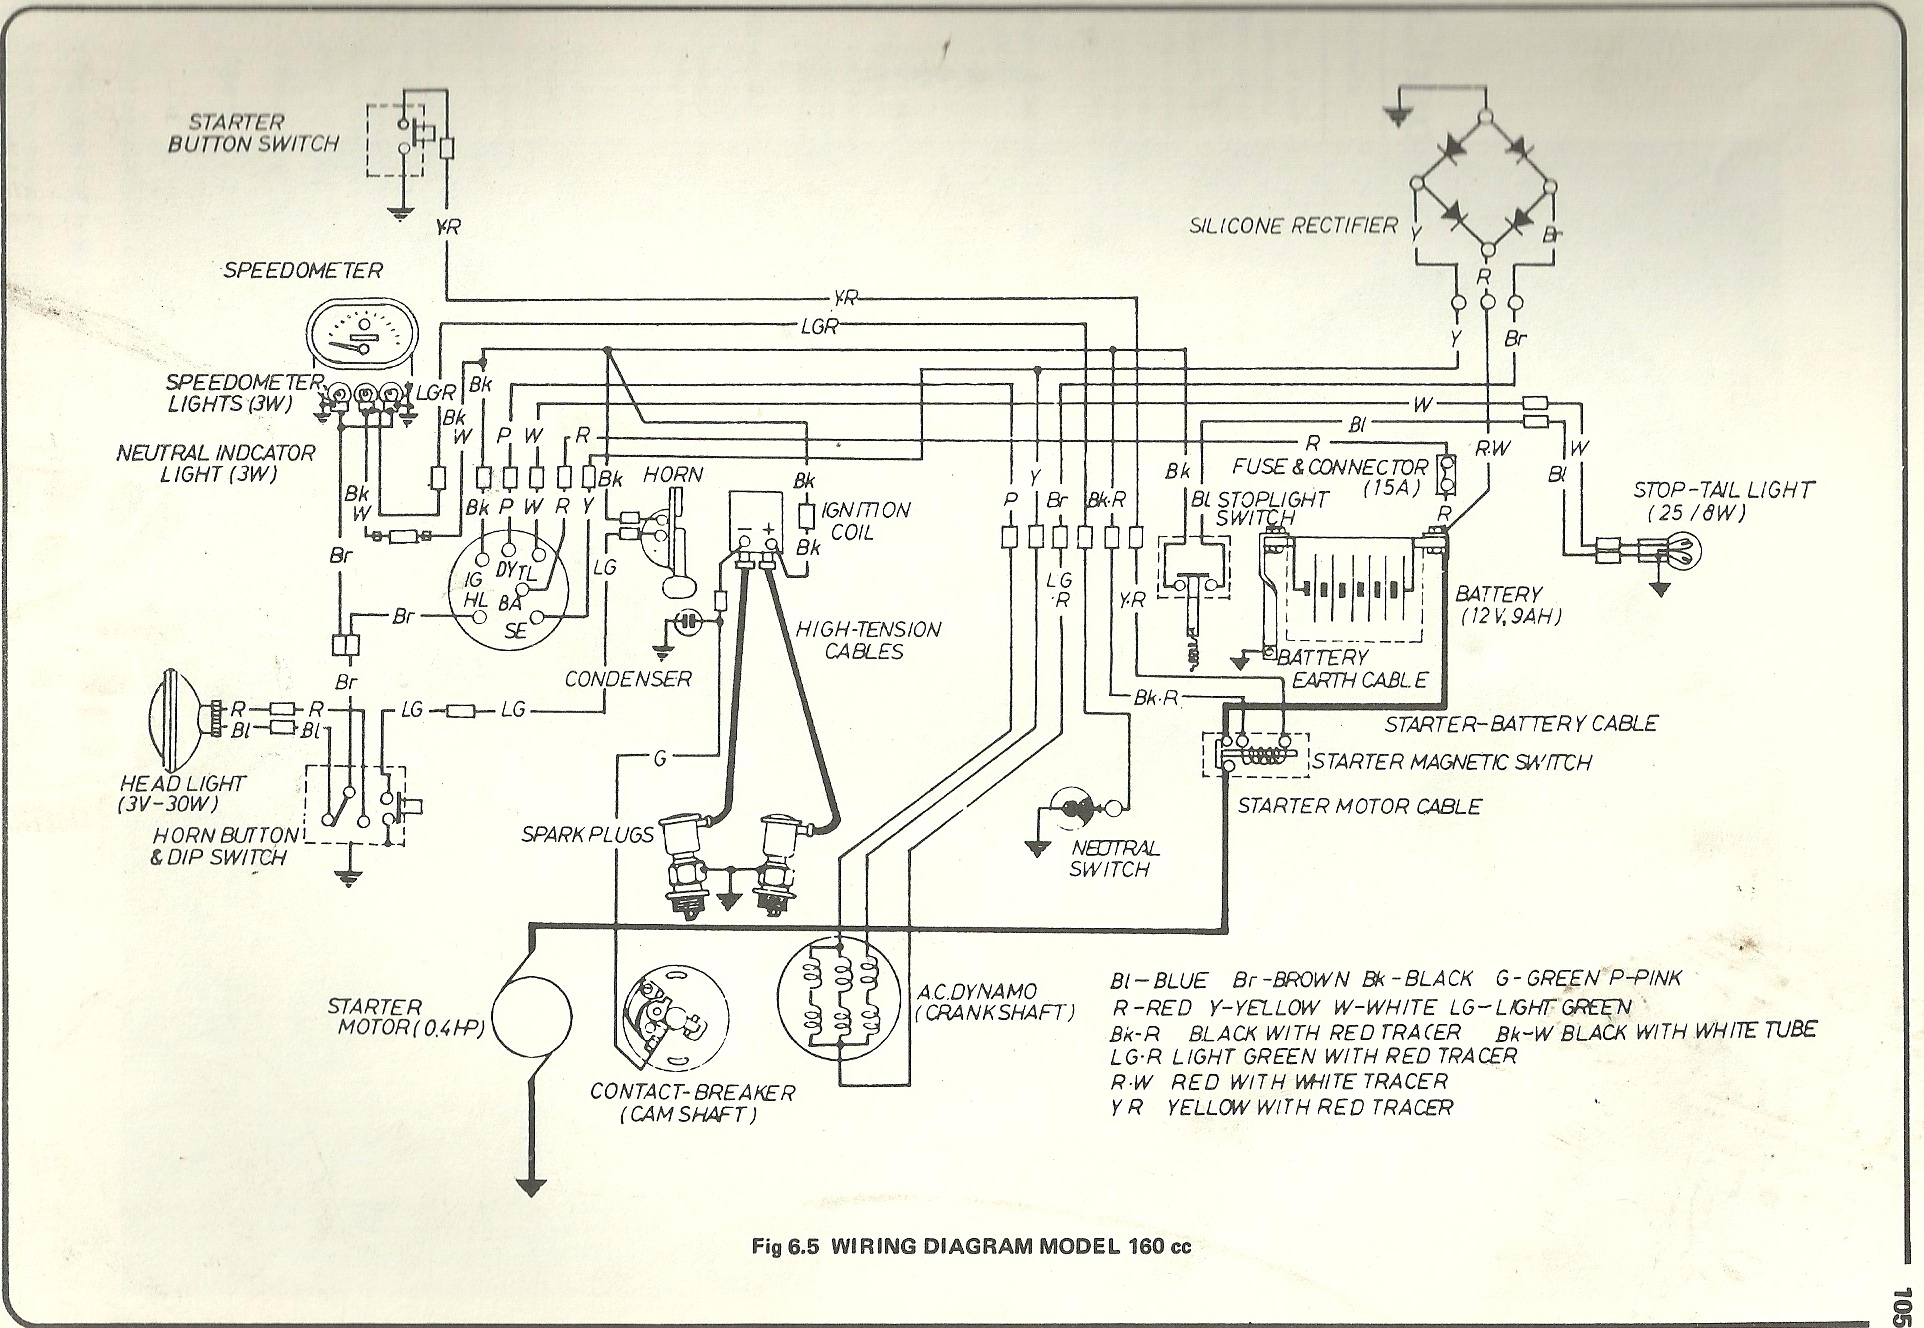 CB1602 wiring diagrams 1980 kawasaki 440 ltd wiring diagram at bayanpartner.co